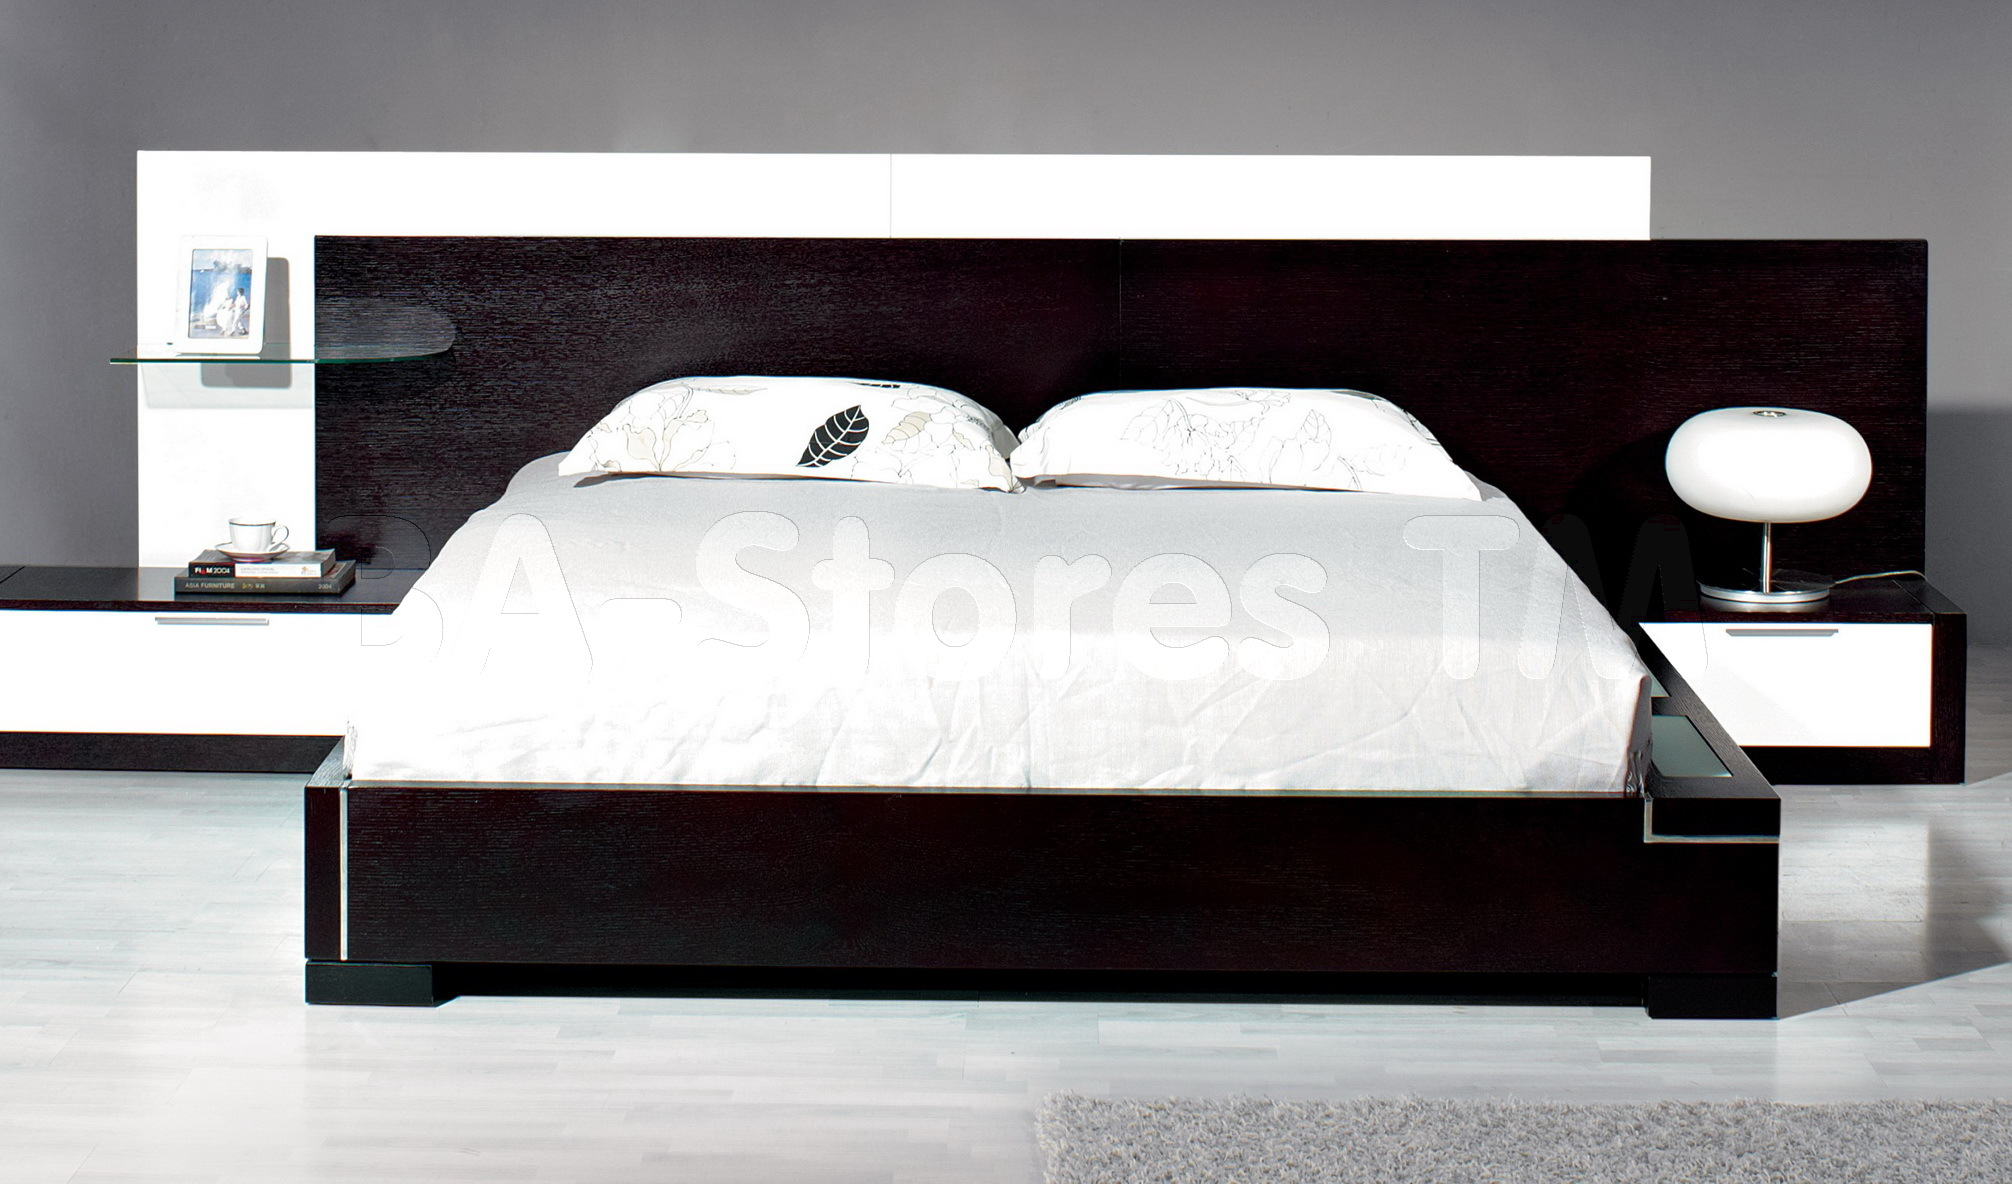 Round Beds | Round Beds for Sale Ikea | Round Bed Prices